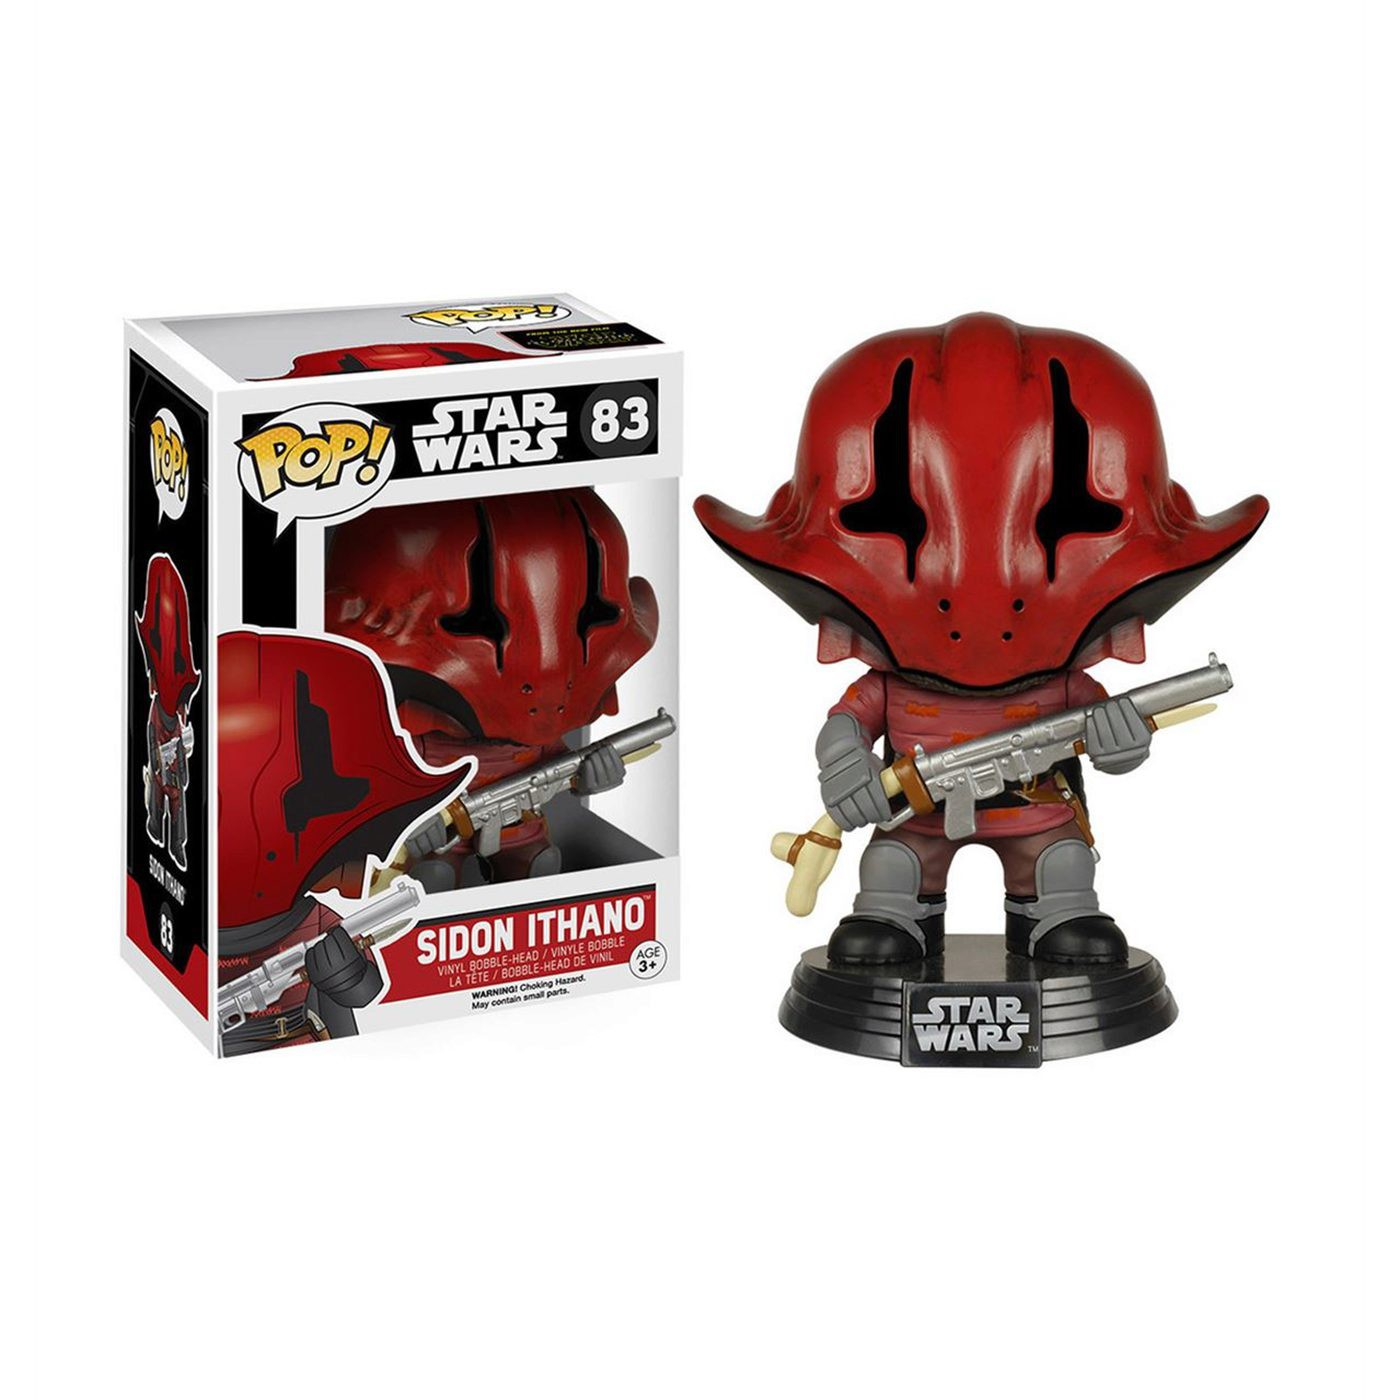 Star Wars The Force Awakens Sidon Ithano Pop Bobblehead